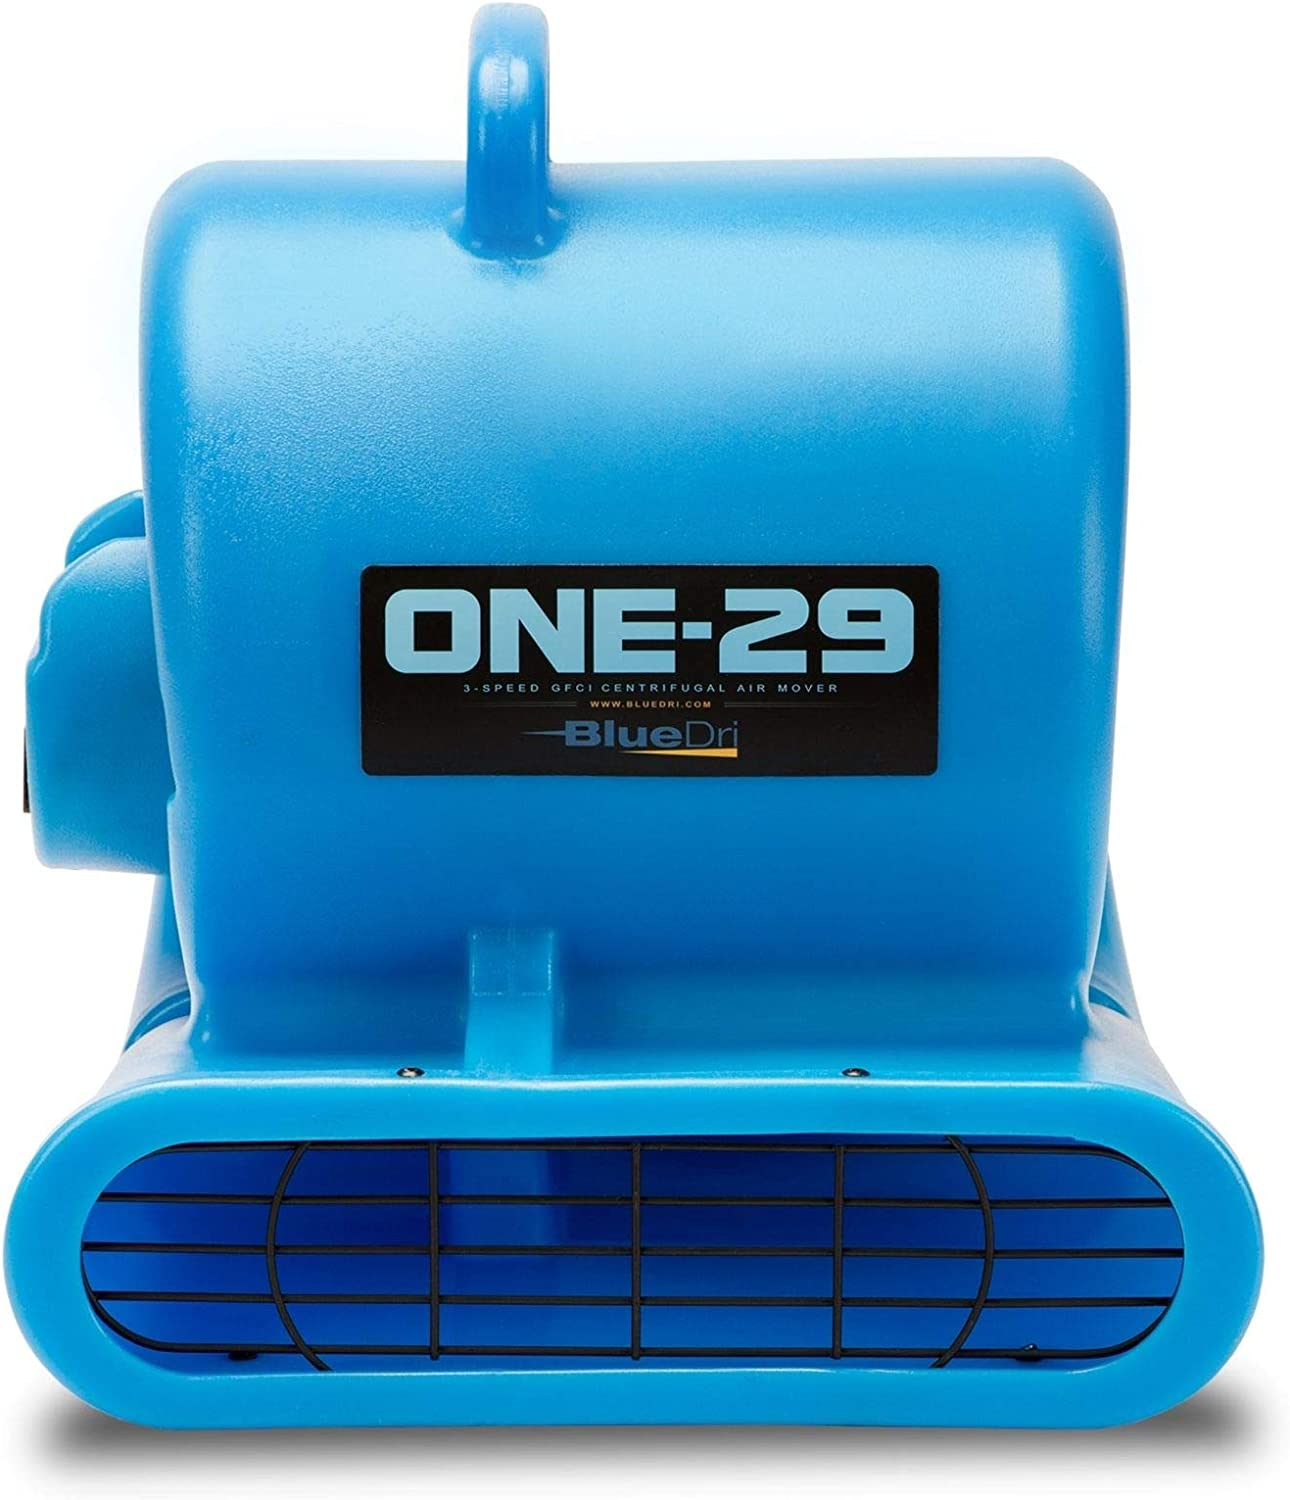 BlueDri One-29 1 3 HP High Velocity Heavy Duty Portable Air Mover Floor Carpet Dryer Blower Fan for Water Damage Equipment Restoration, Blue